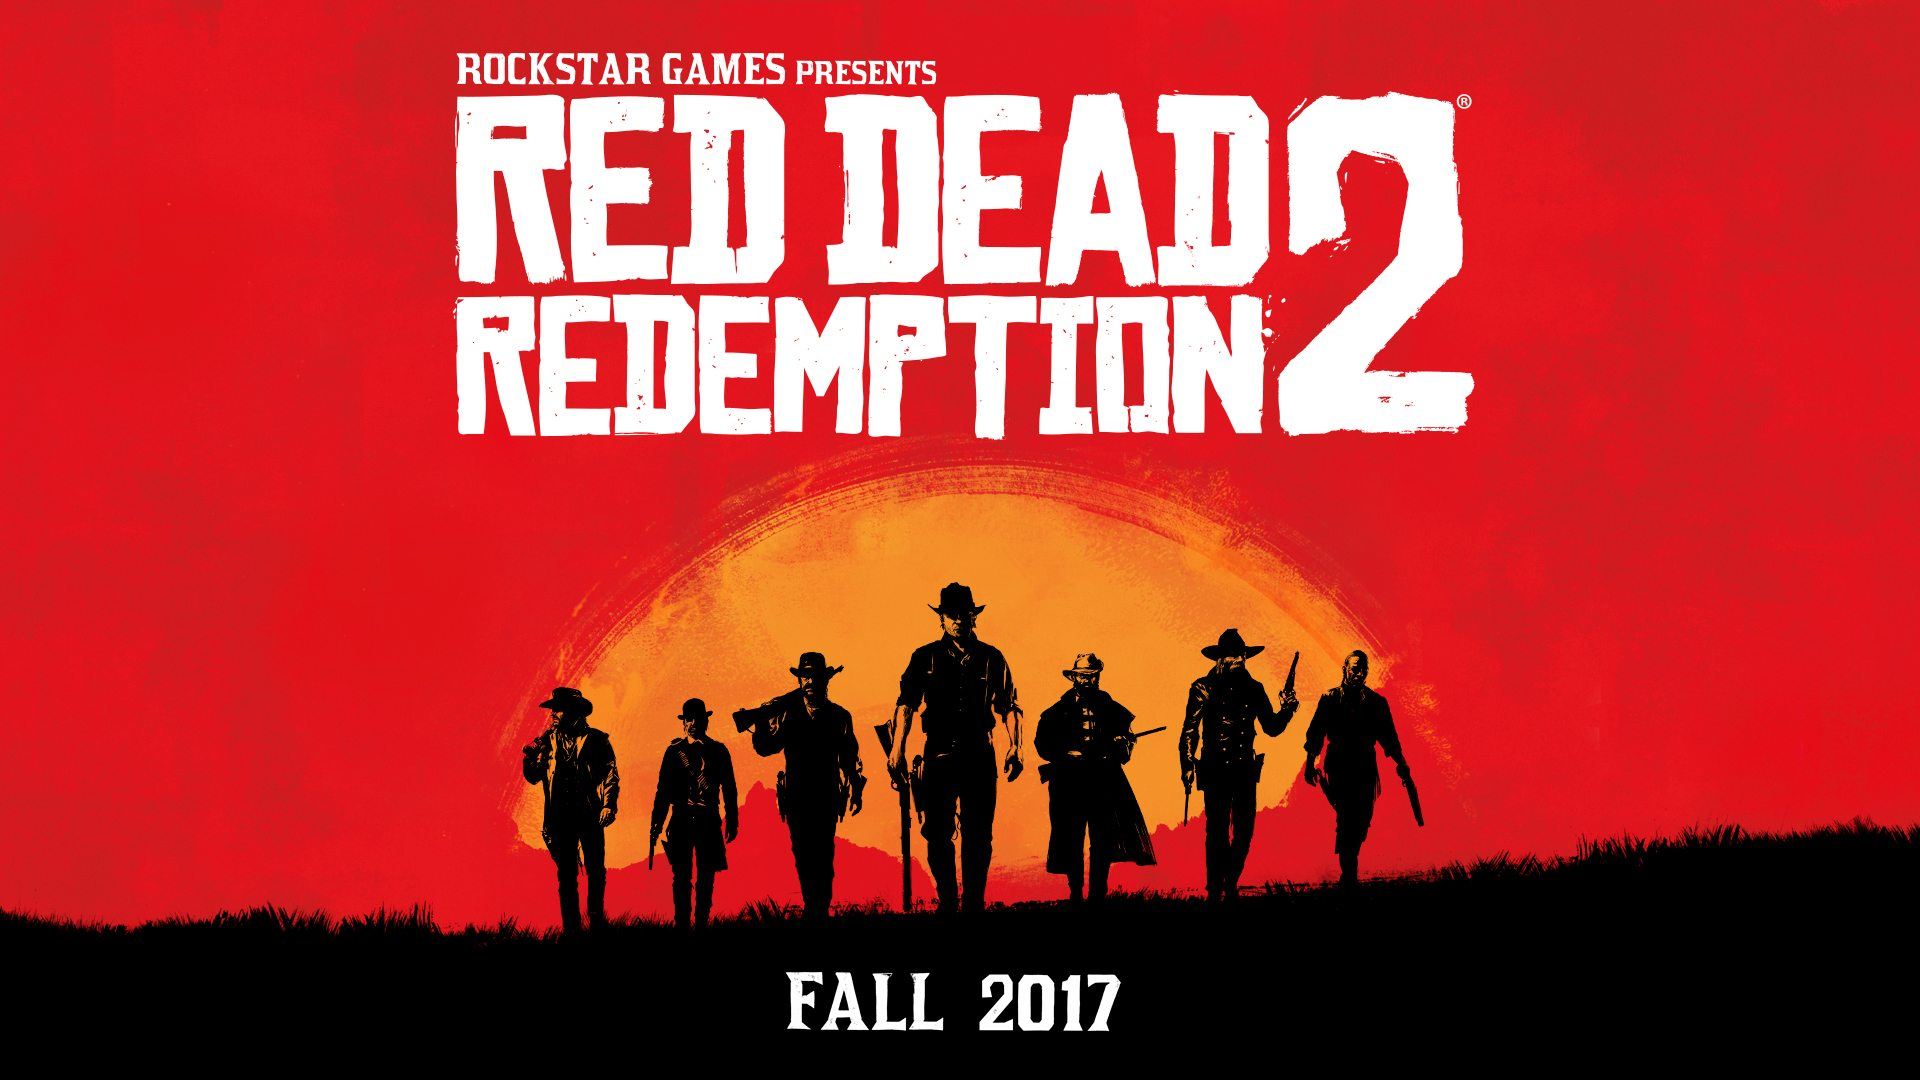 Red Dead Redemption 2 Announced by Rockstar Games for Fall 2017